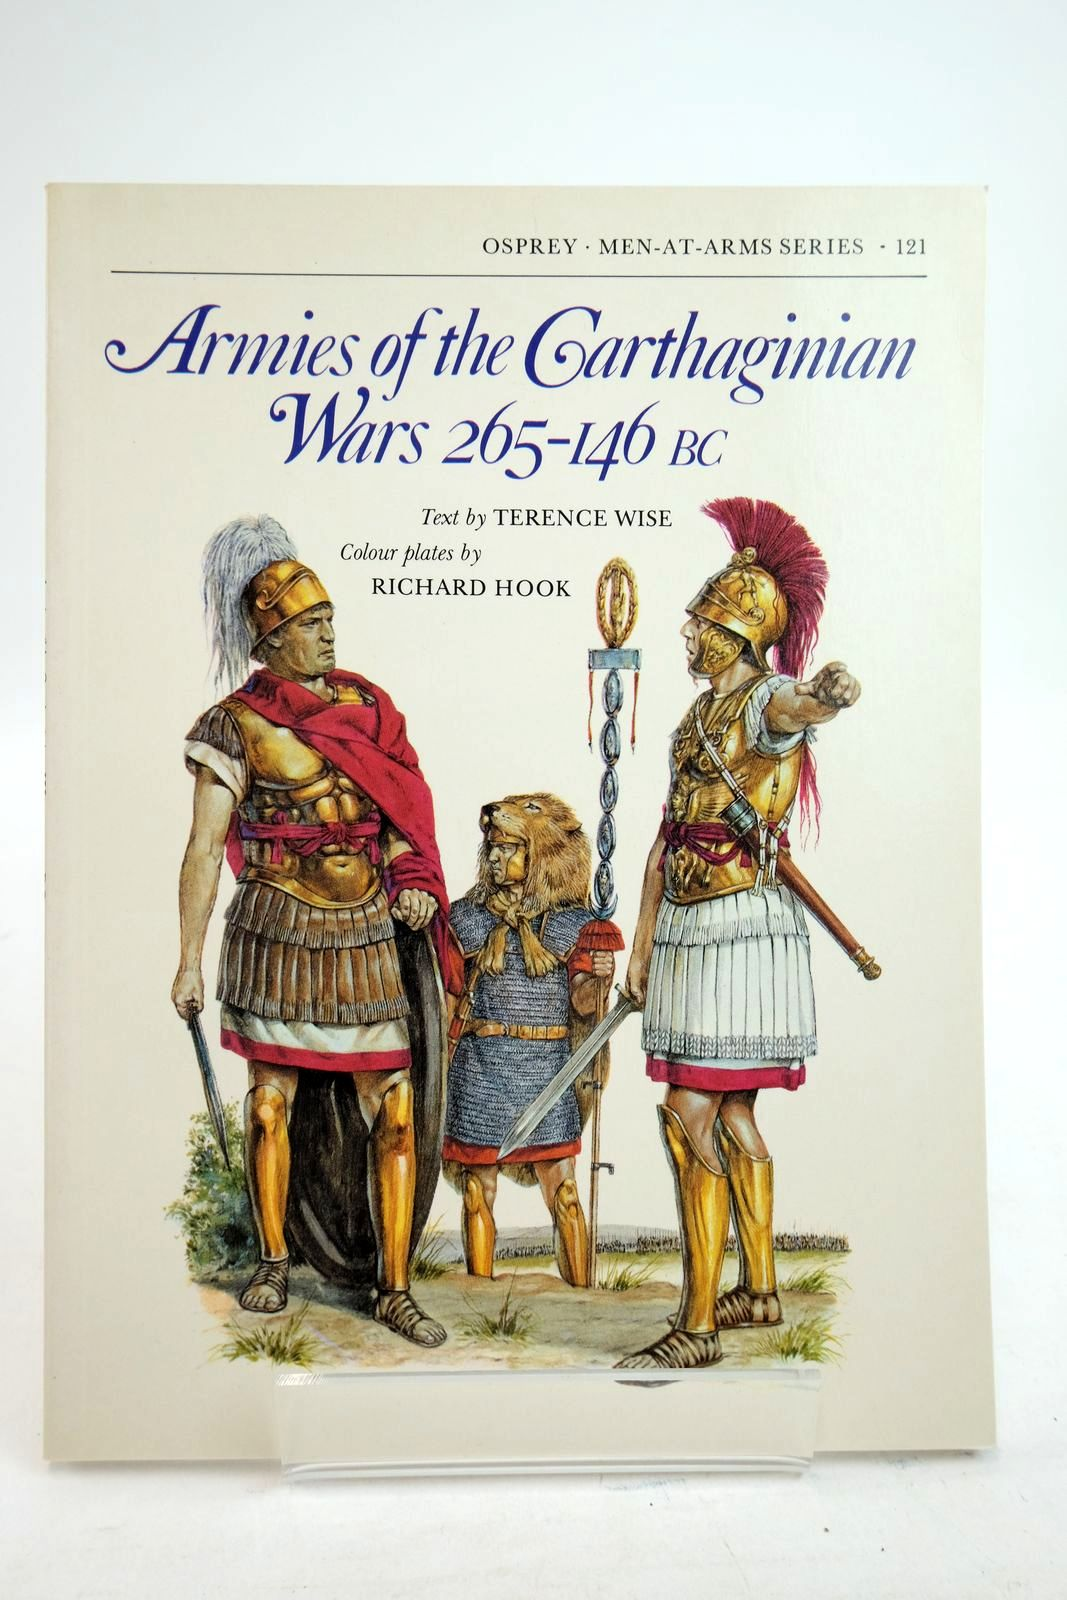 Photo of ARMIES OF THE CARTHAGINIAN WARS 265-146 BC (MEN-AT-ARMS) written by Wise, Terence illustrated by Hook, Richard published by Osprey Publishing (STOCK CODE: 2134738)  for sale by Stella & Rose's Books